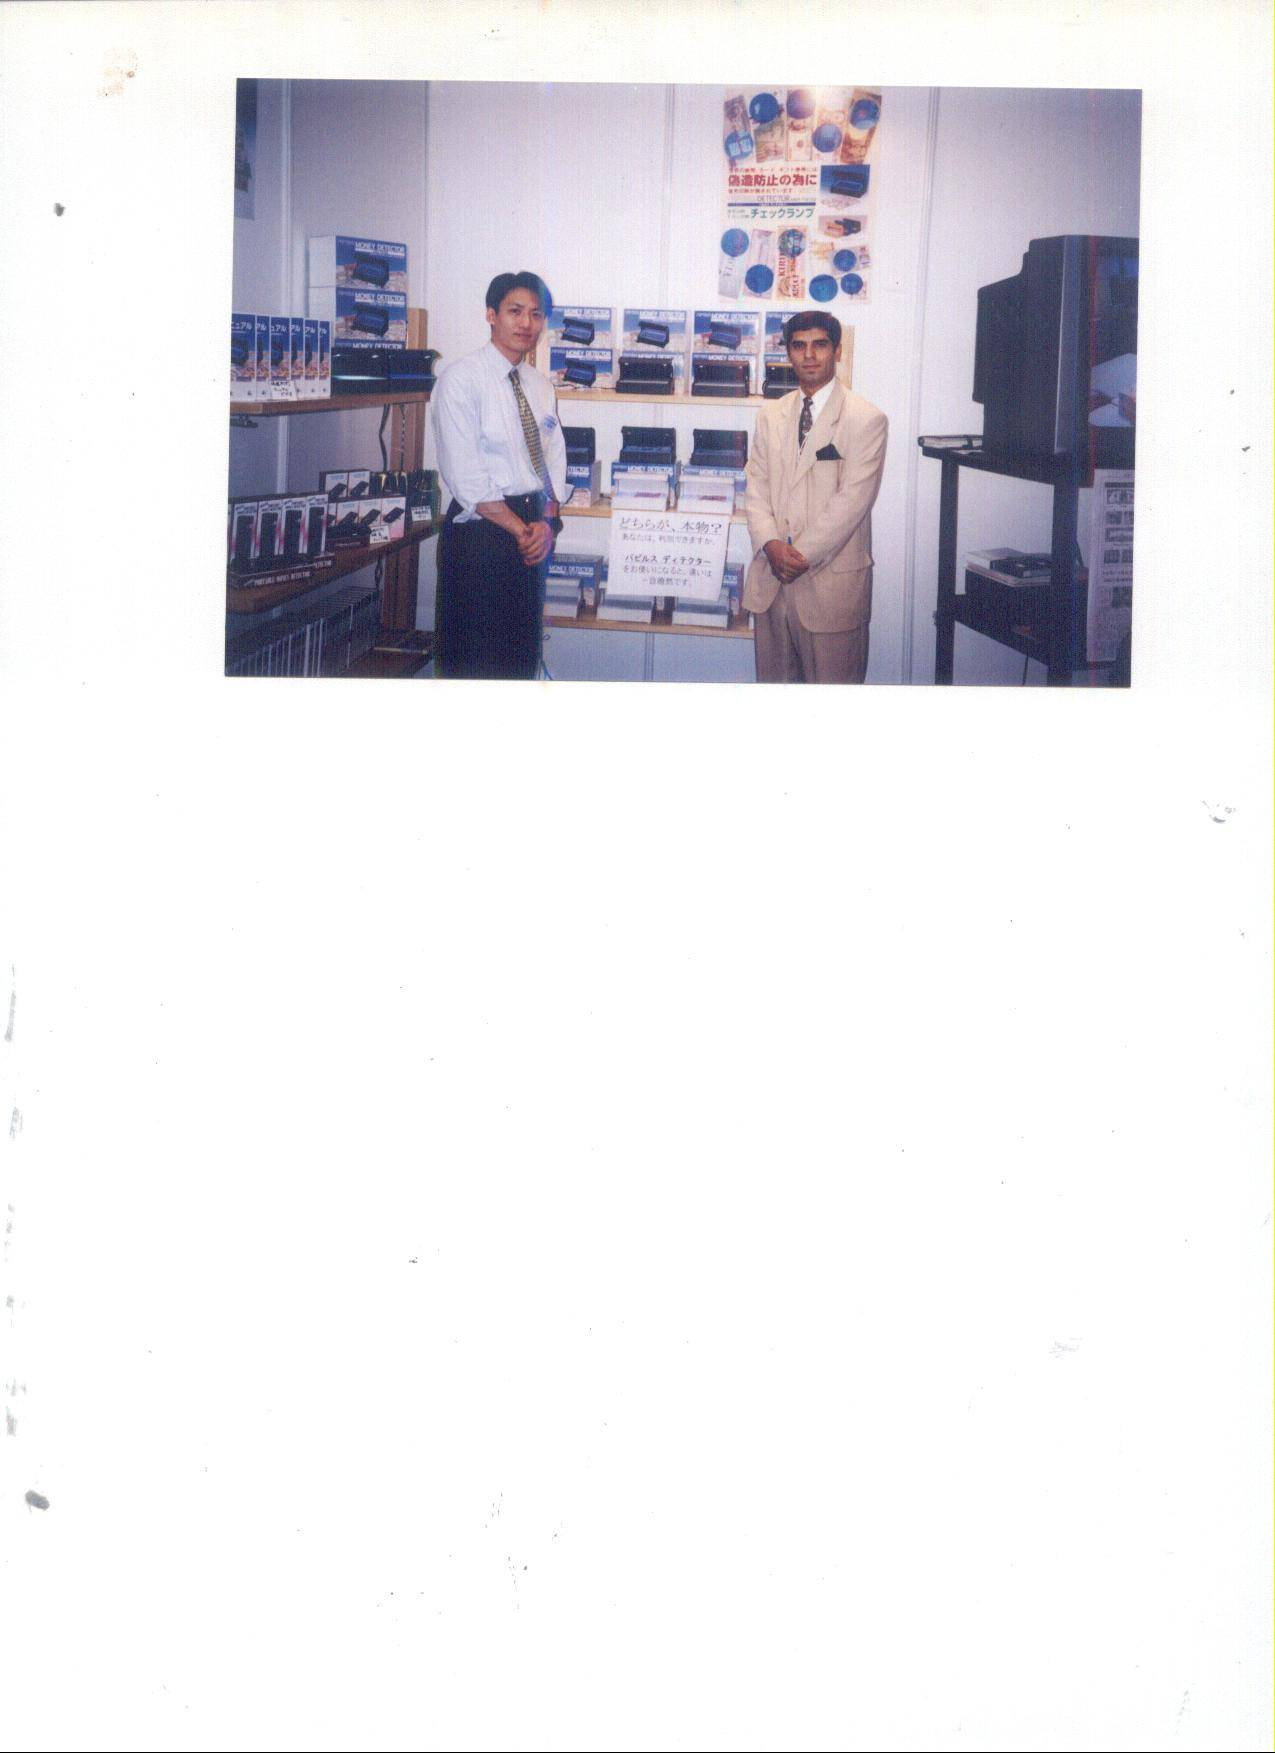 Mr.shimizu Banking Eqpts Mfr in Tokyo ISOT Exhibition with Amir Ali( dubai) for Product launching (T